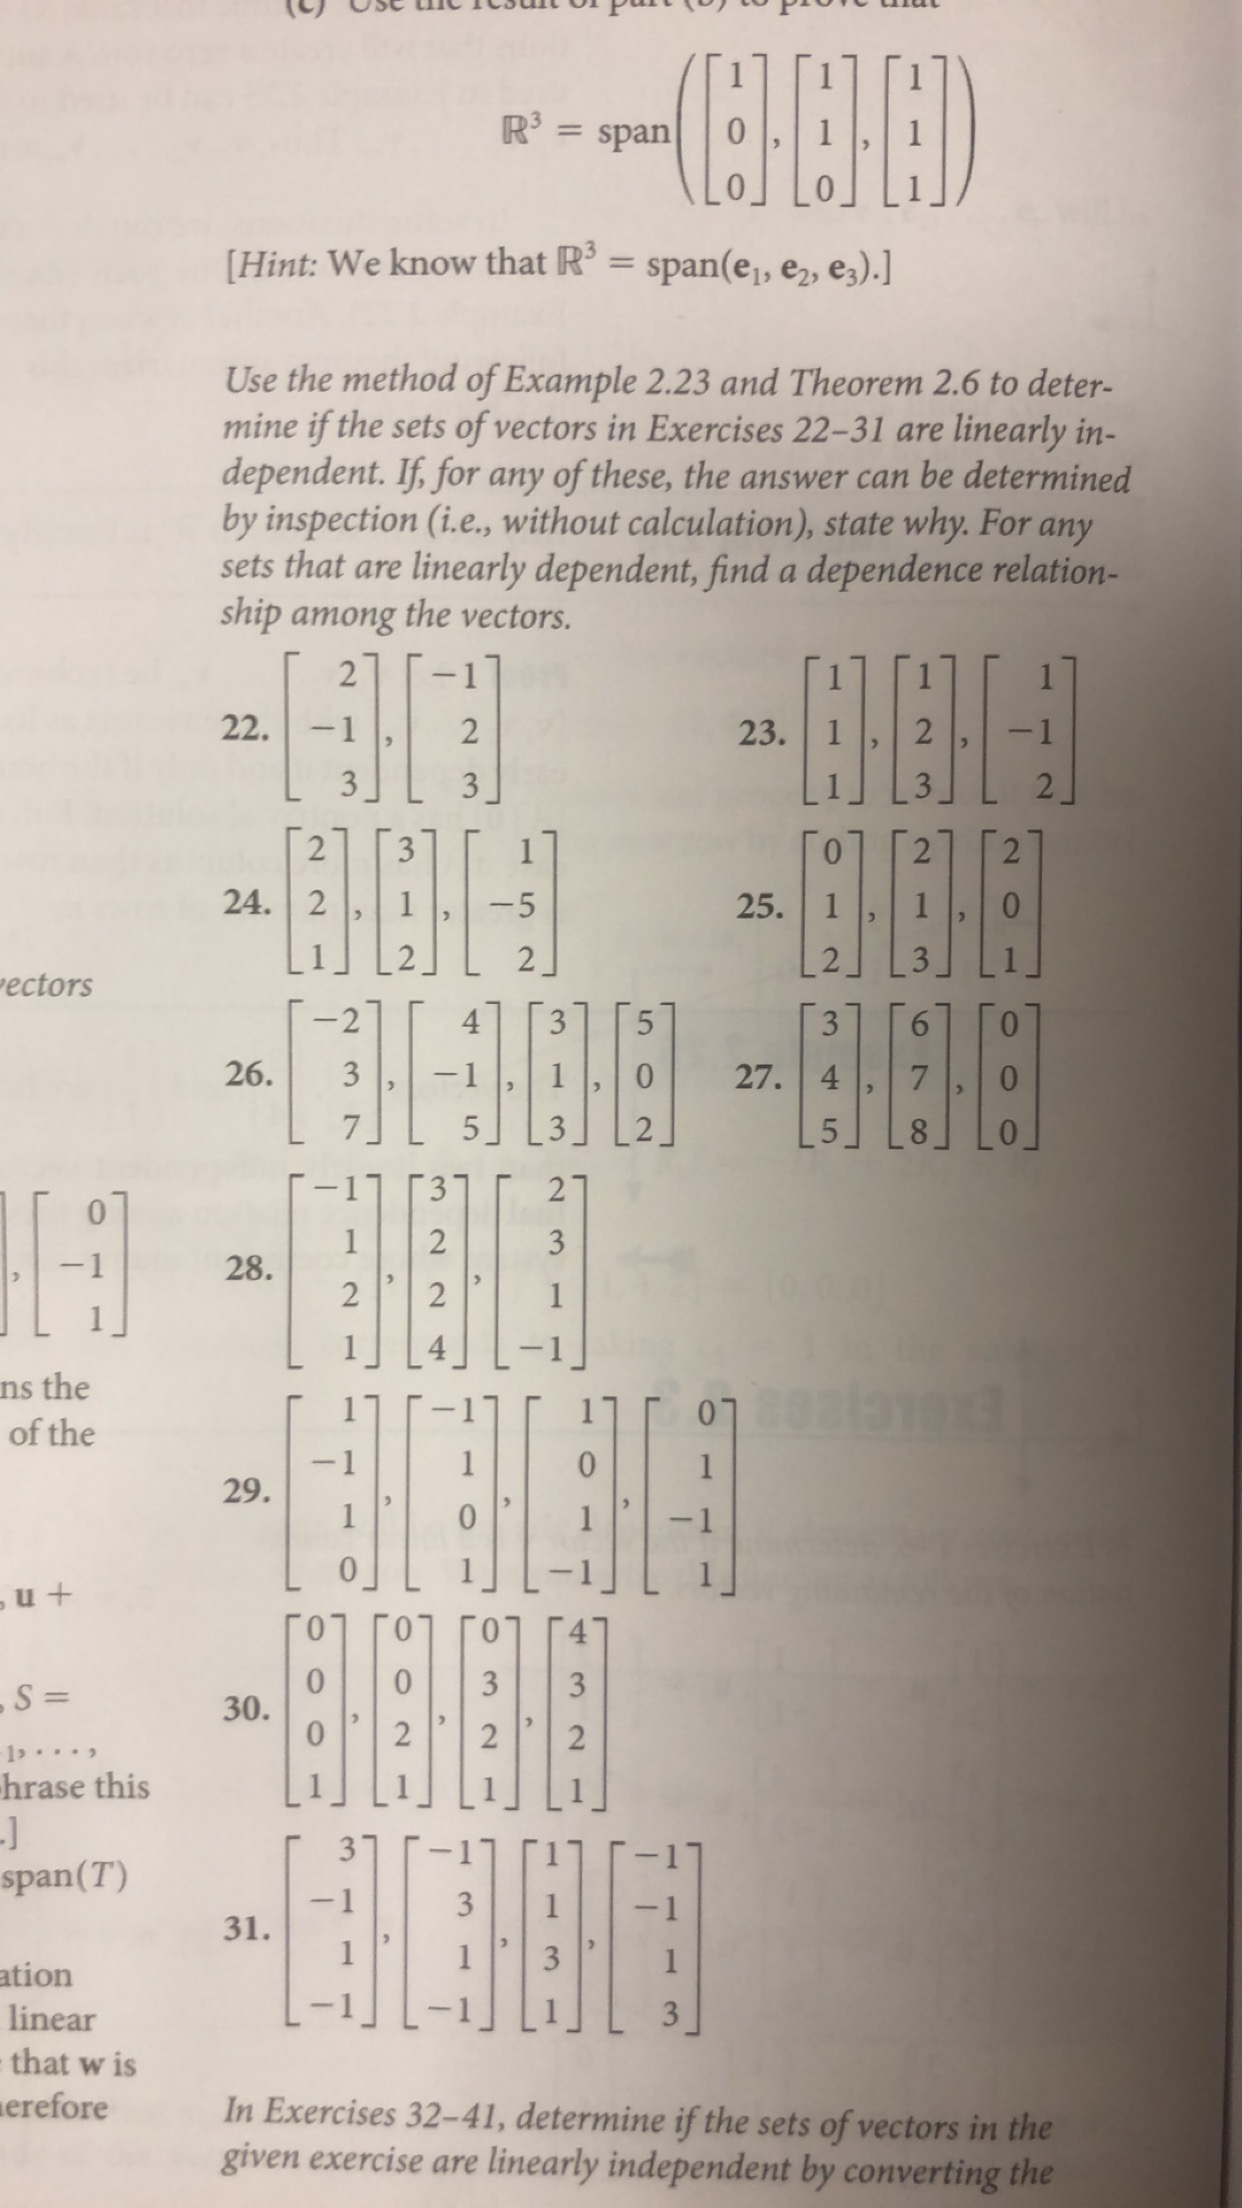 """R3 span Hint: We know that R = span(e1, e2, e3).] Use the method of Example 2.23 and Theorem 2.6 to deter- mine if the sets of vectors in Exercises 22-31 are dependent. If, for any of these, the answer can be determined by inspection (i.e., without calculation), state why. For any sets that are linearly in- linearly dependent, find a dependence relation- ship among the vectors. 2 -1 22. 2 - 1 23. 3 3 2 2 3 2 2 24. 2 25. 1 -5 2 """"ectors 2 4 3 5 3 26. 27. 4 -1 5 3 21 1 2 3 28. 2 2 ns the of the FENELETA 1913 1 29 ь и + 10 30. 10 3 3 -S = 2 1. hrase this -J span(T) 3 -1 3 31. 1 ation linear 3 that w is erefore In Exercises 32-41, determine if the sets of vectors in the given exercise are linearly independent by converting the LO 2 1"""